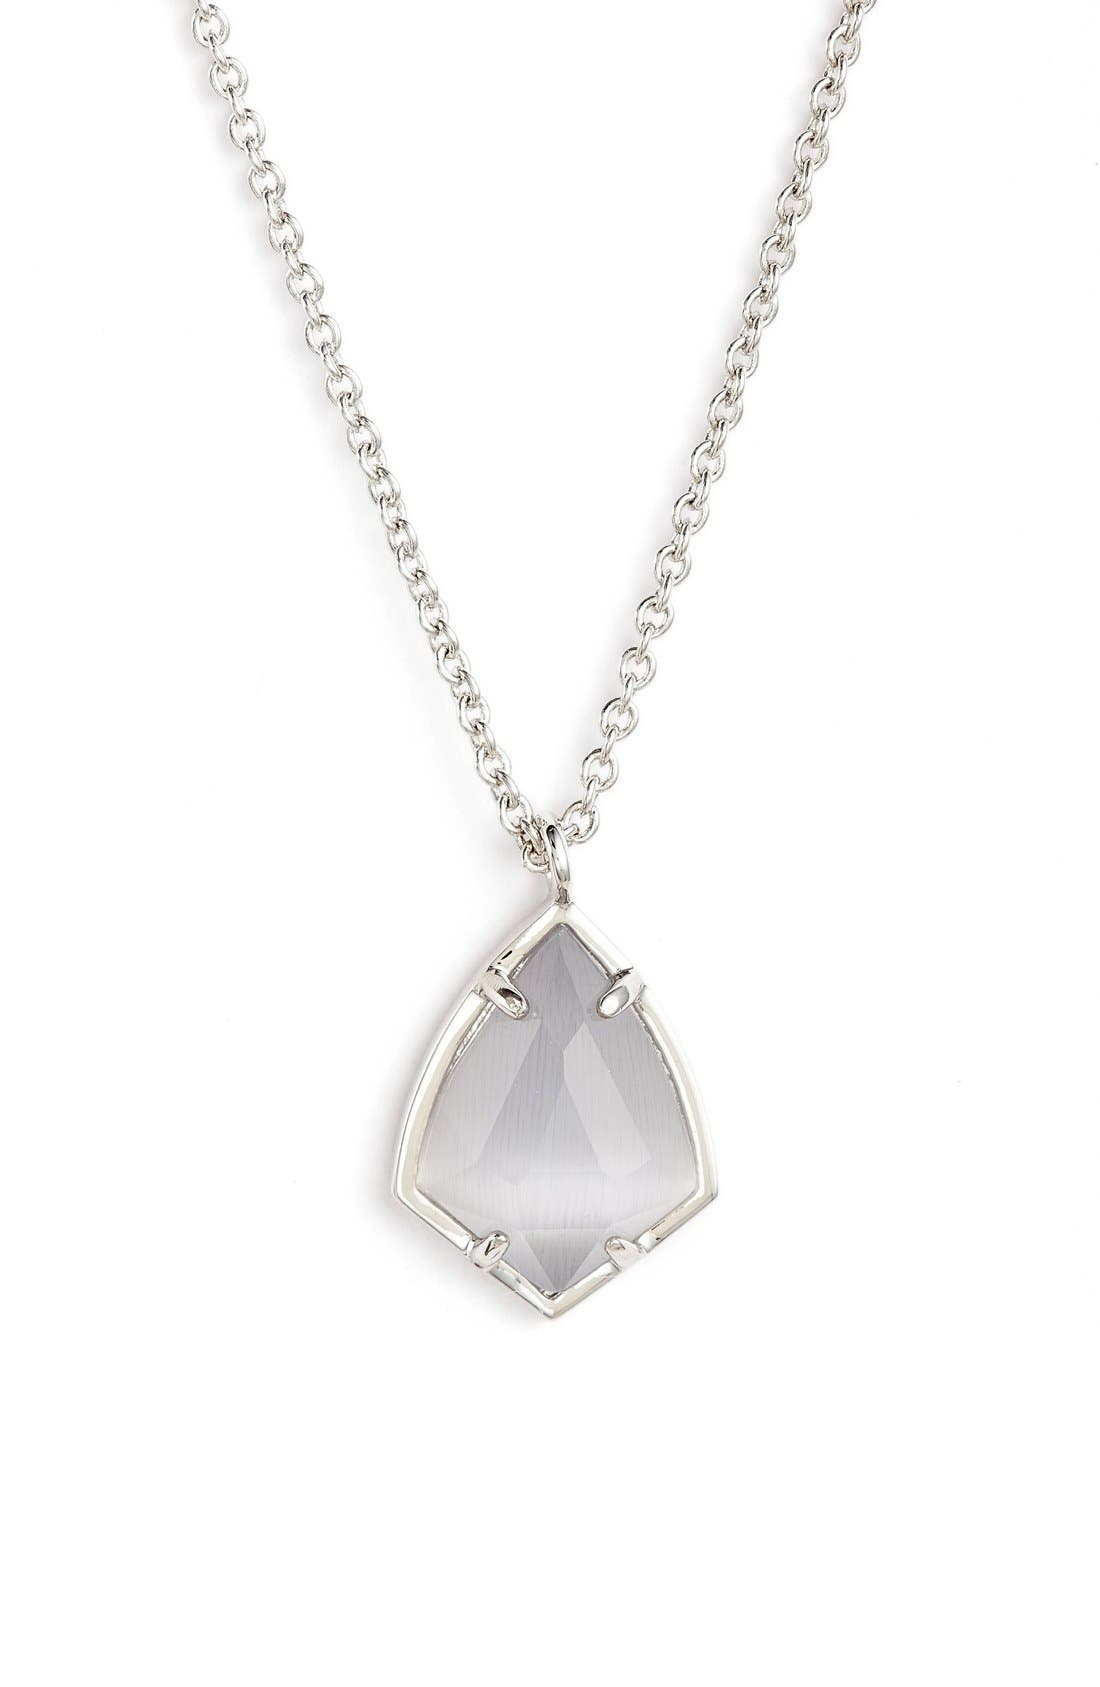 Main Image - Kendra Scott 'Cory' Semiprecious Stone Pendant Necklace